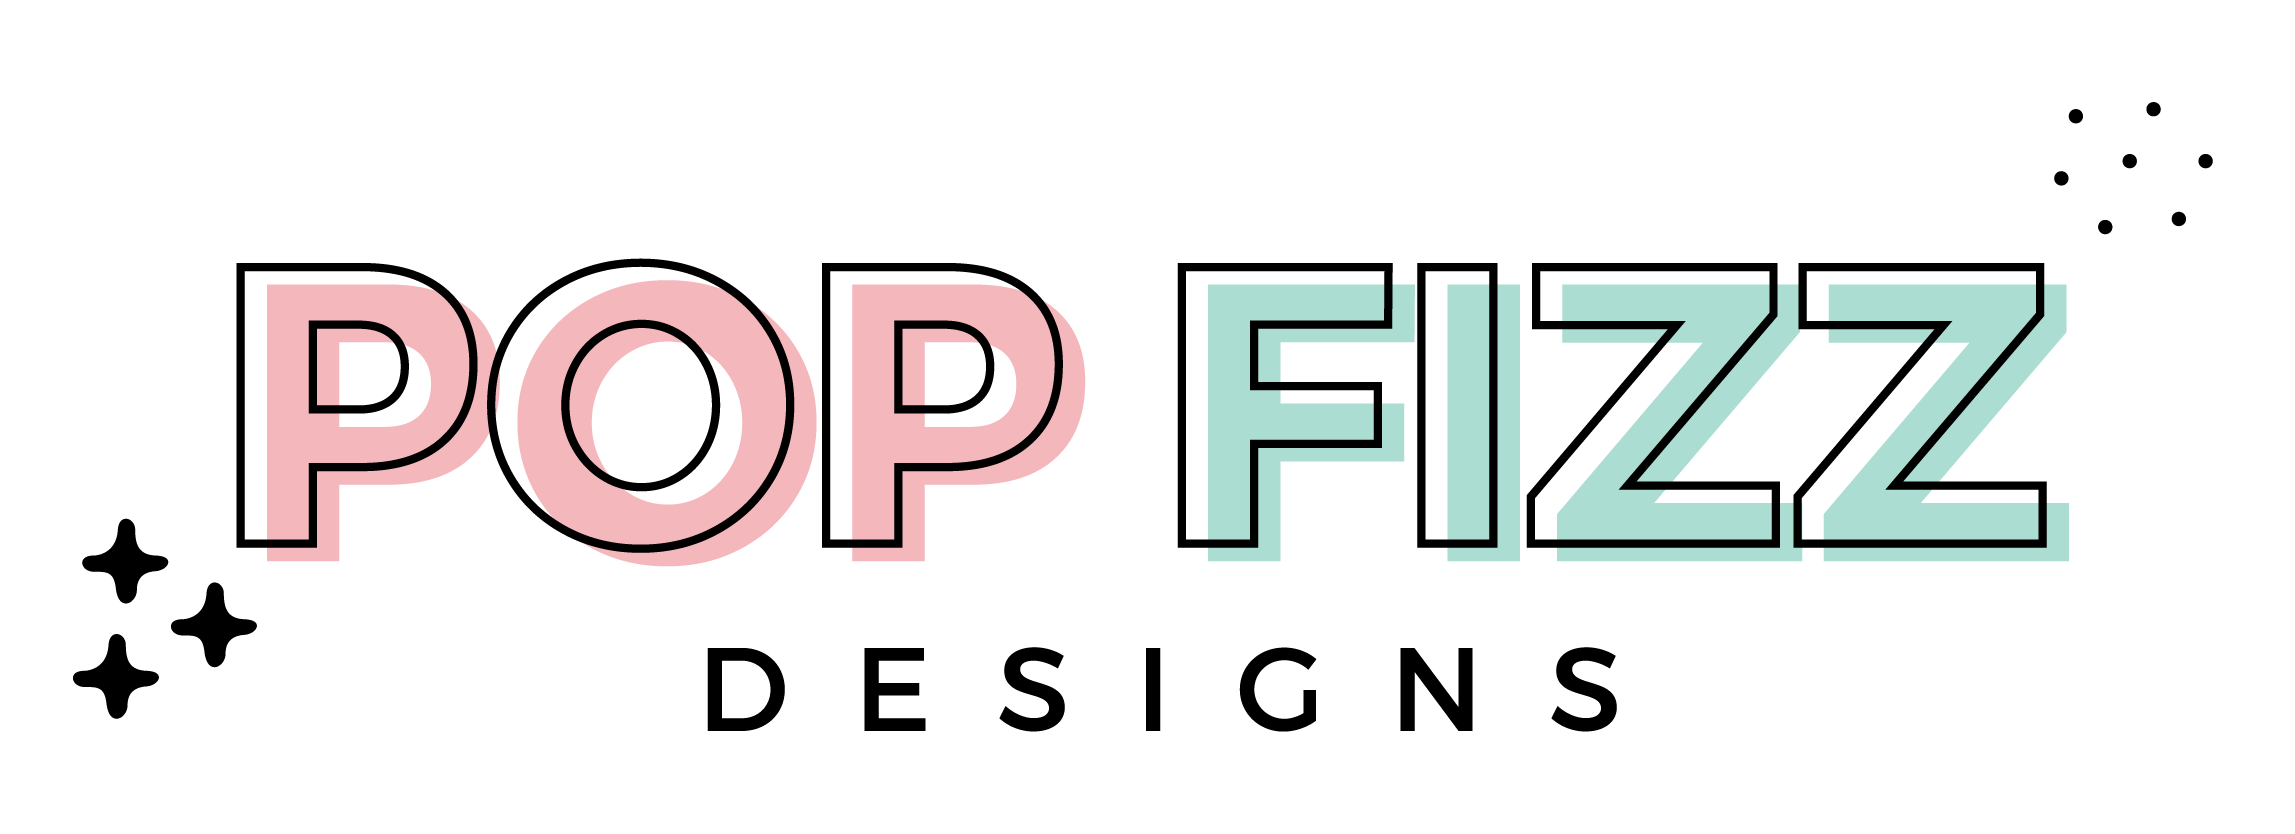 Pop Fizz Designs